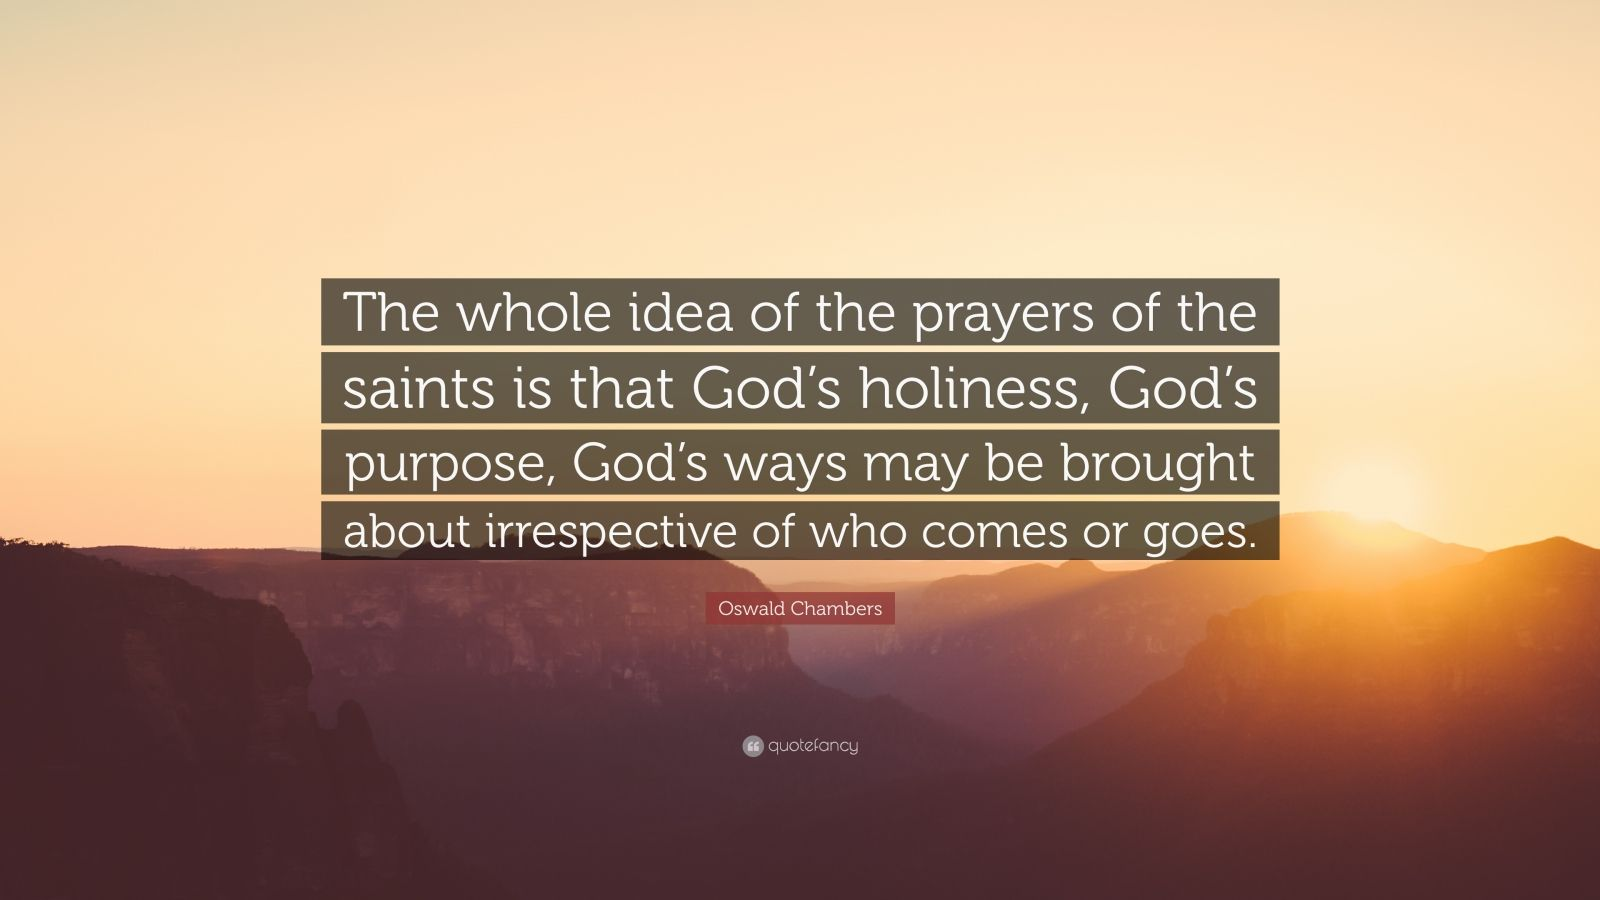 """Oswald Chambers Quote: """"The whole idea of the prayers of the saints is that God's holiness, God's purpose, God's ways may be brought about irrespective of who comes or goes."""""""